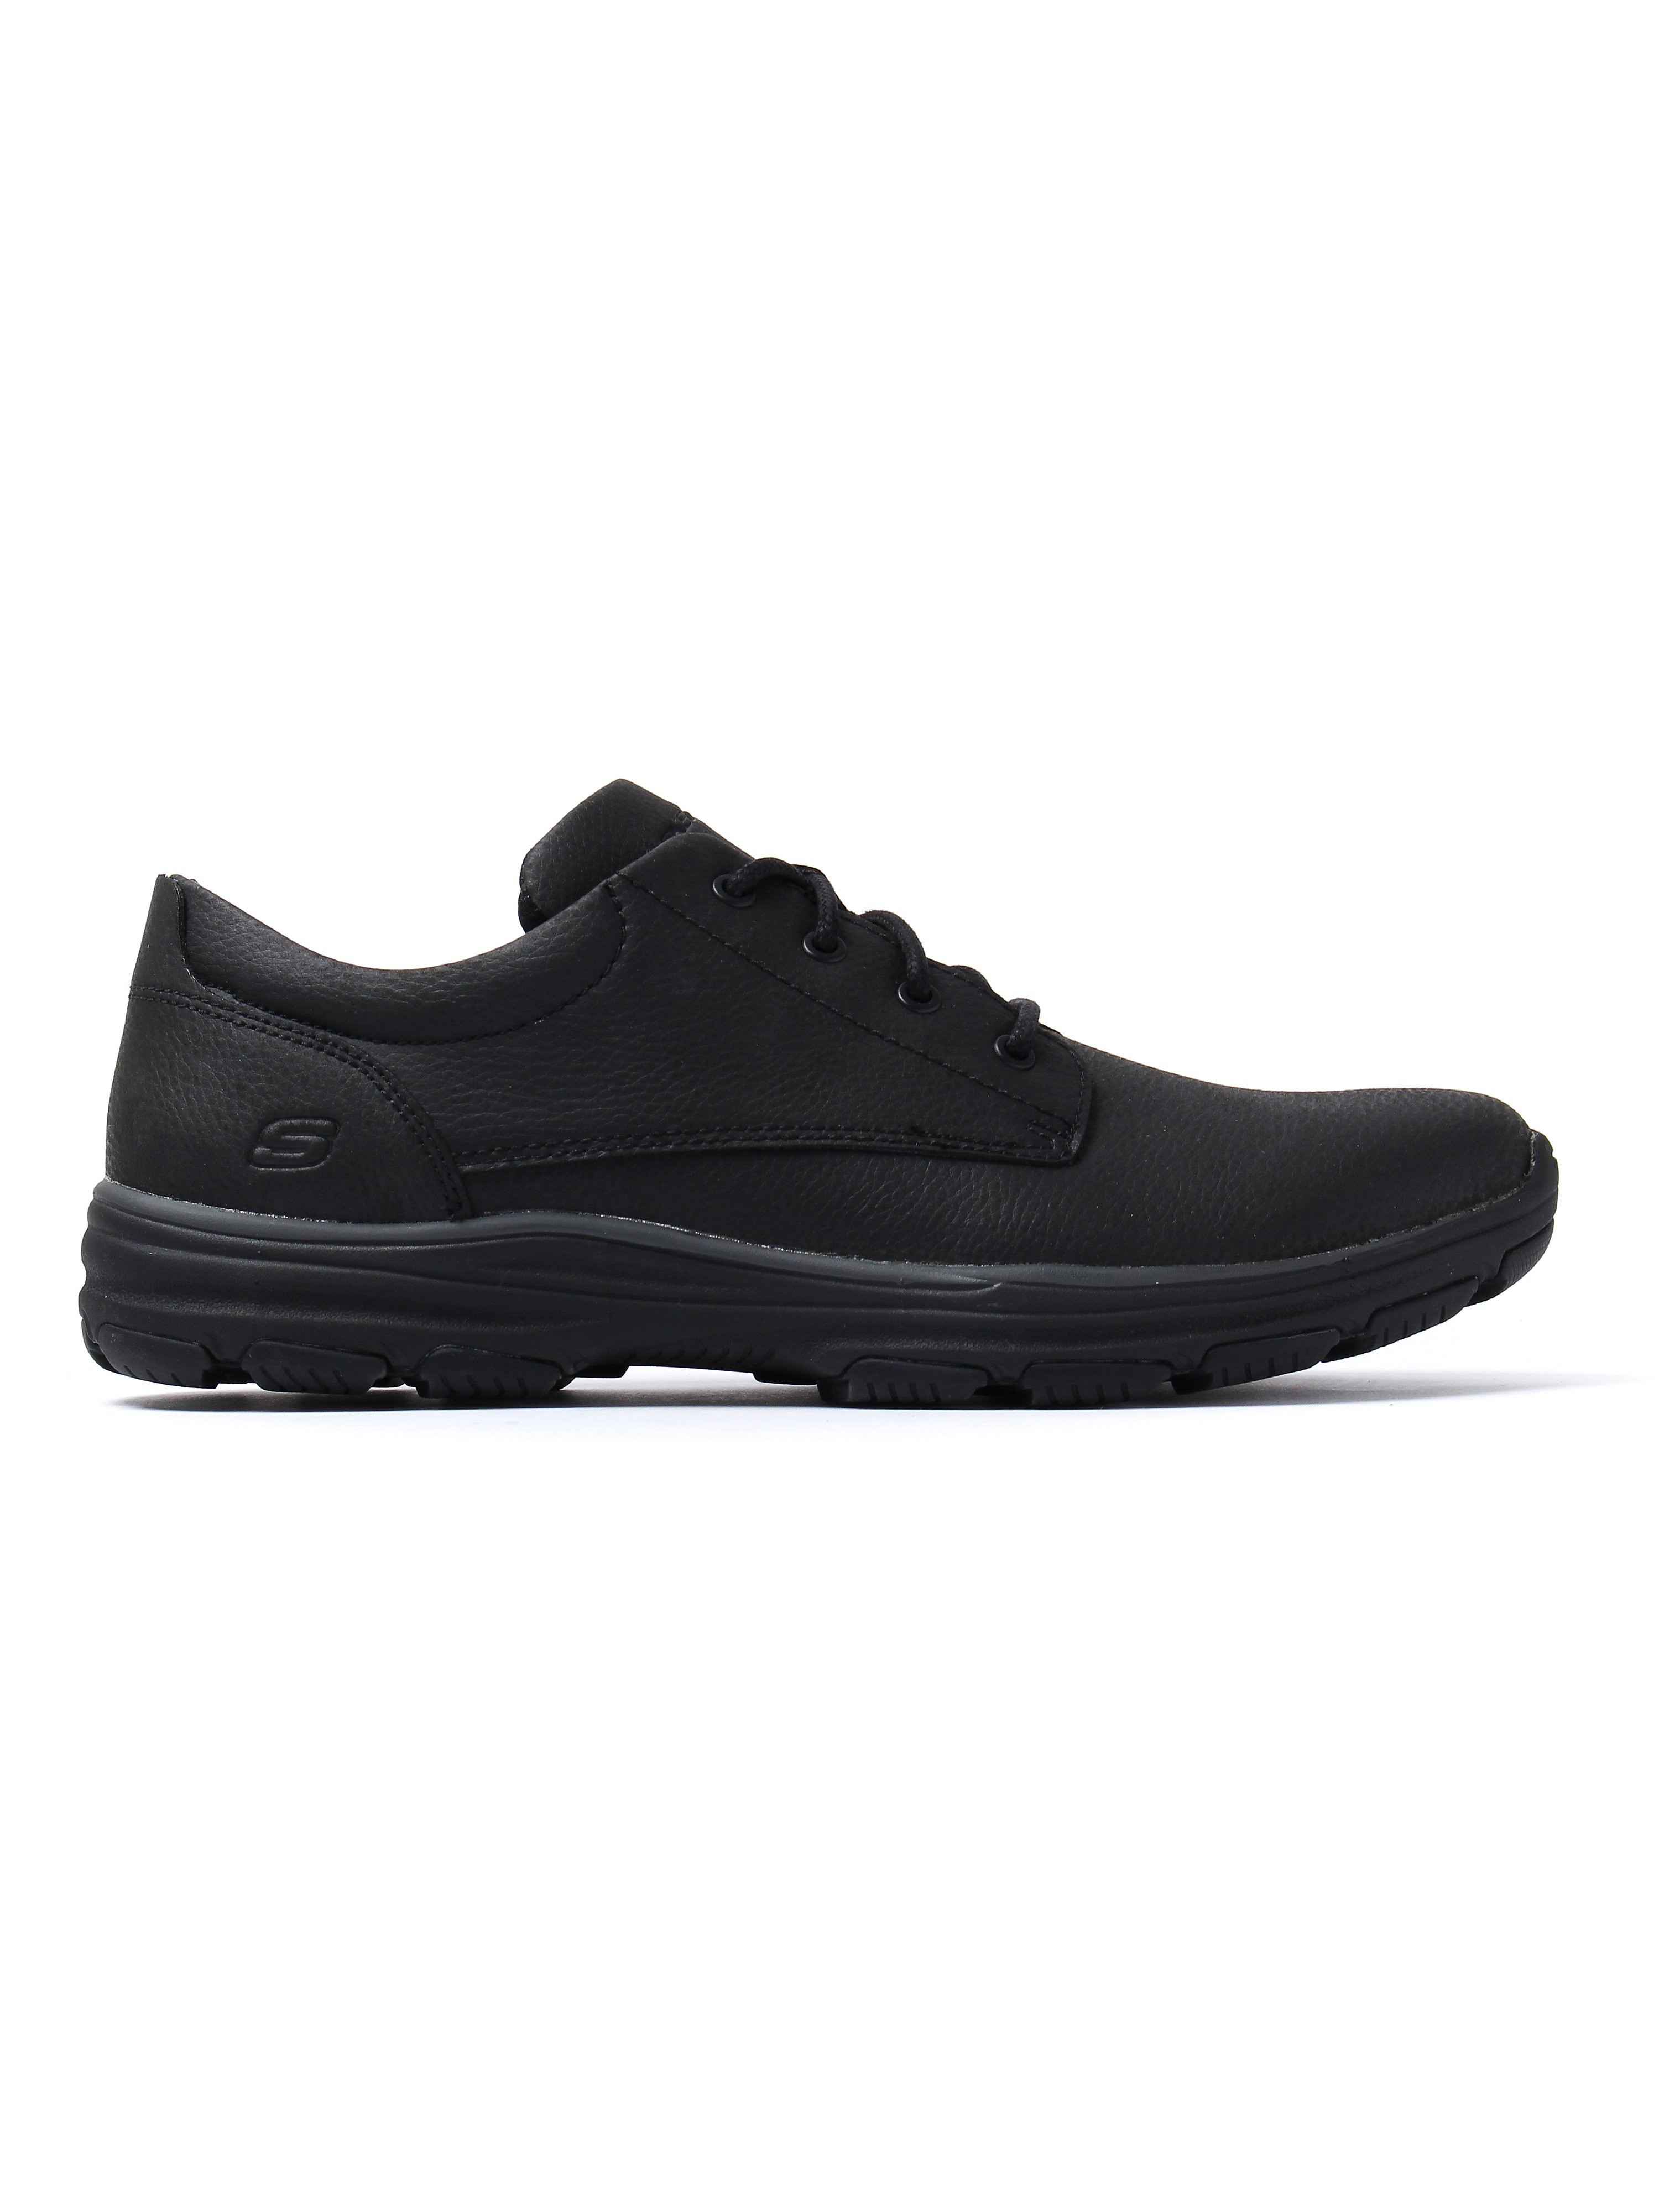 Skechers Men's Garton Modesto Shoes - Black Leather